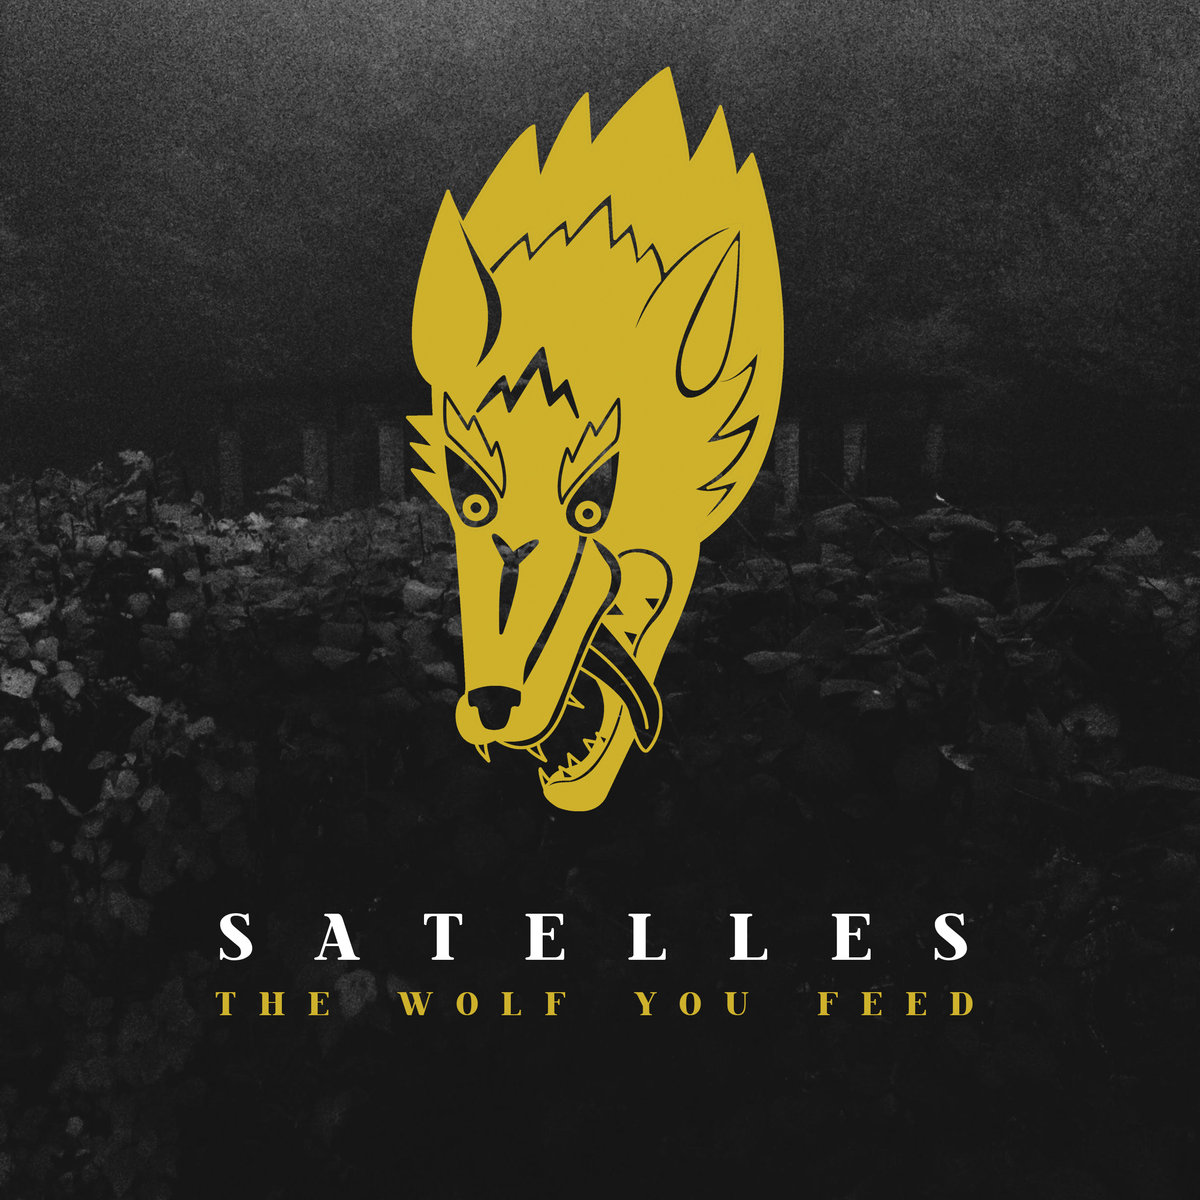 satelles - the wolf you feed